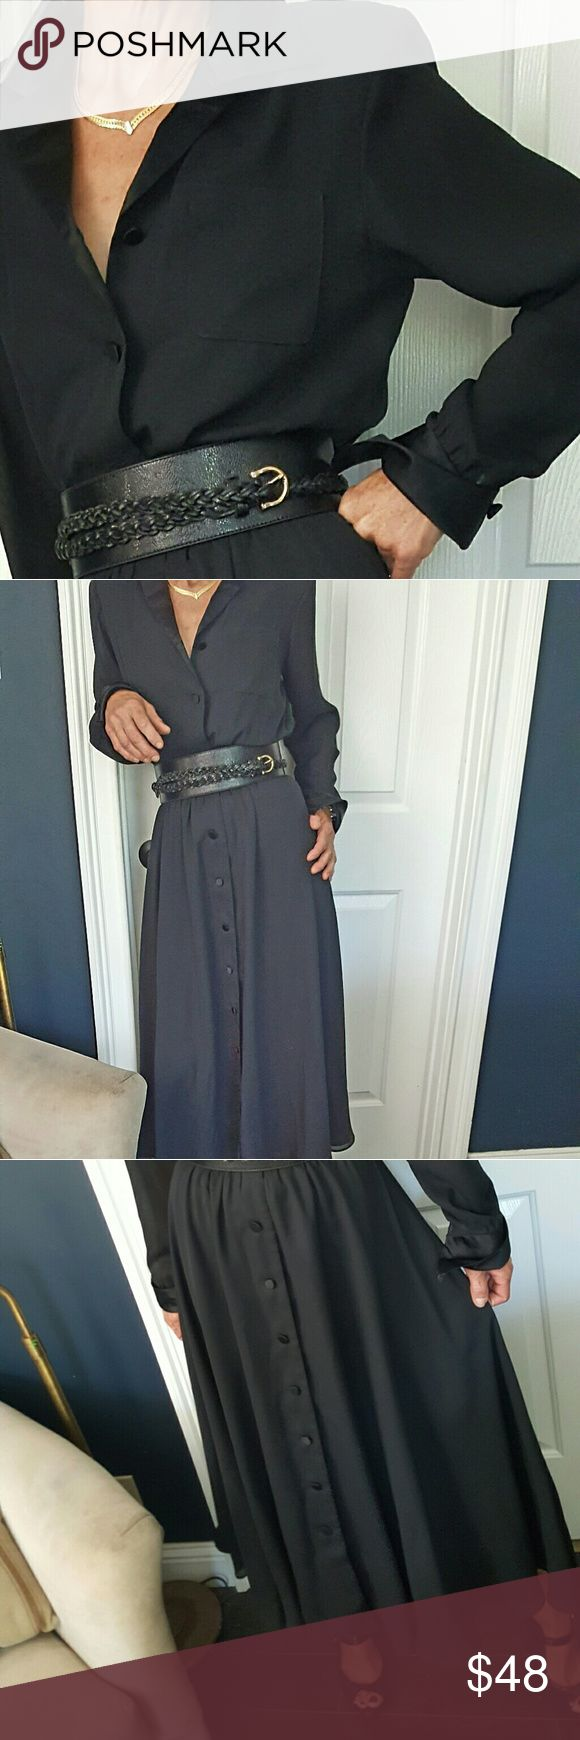 """🍸 1980s Classy Black Tuxedo Dress 🍸 EUC  Gorgeous line and flow. Model is 5'8"""" with a thin build. Perfect physique for this dress. Original belt no shown, modern belt on model, both belts included in the price. Dresses Midi"""